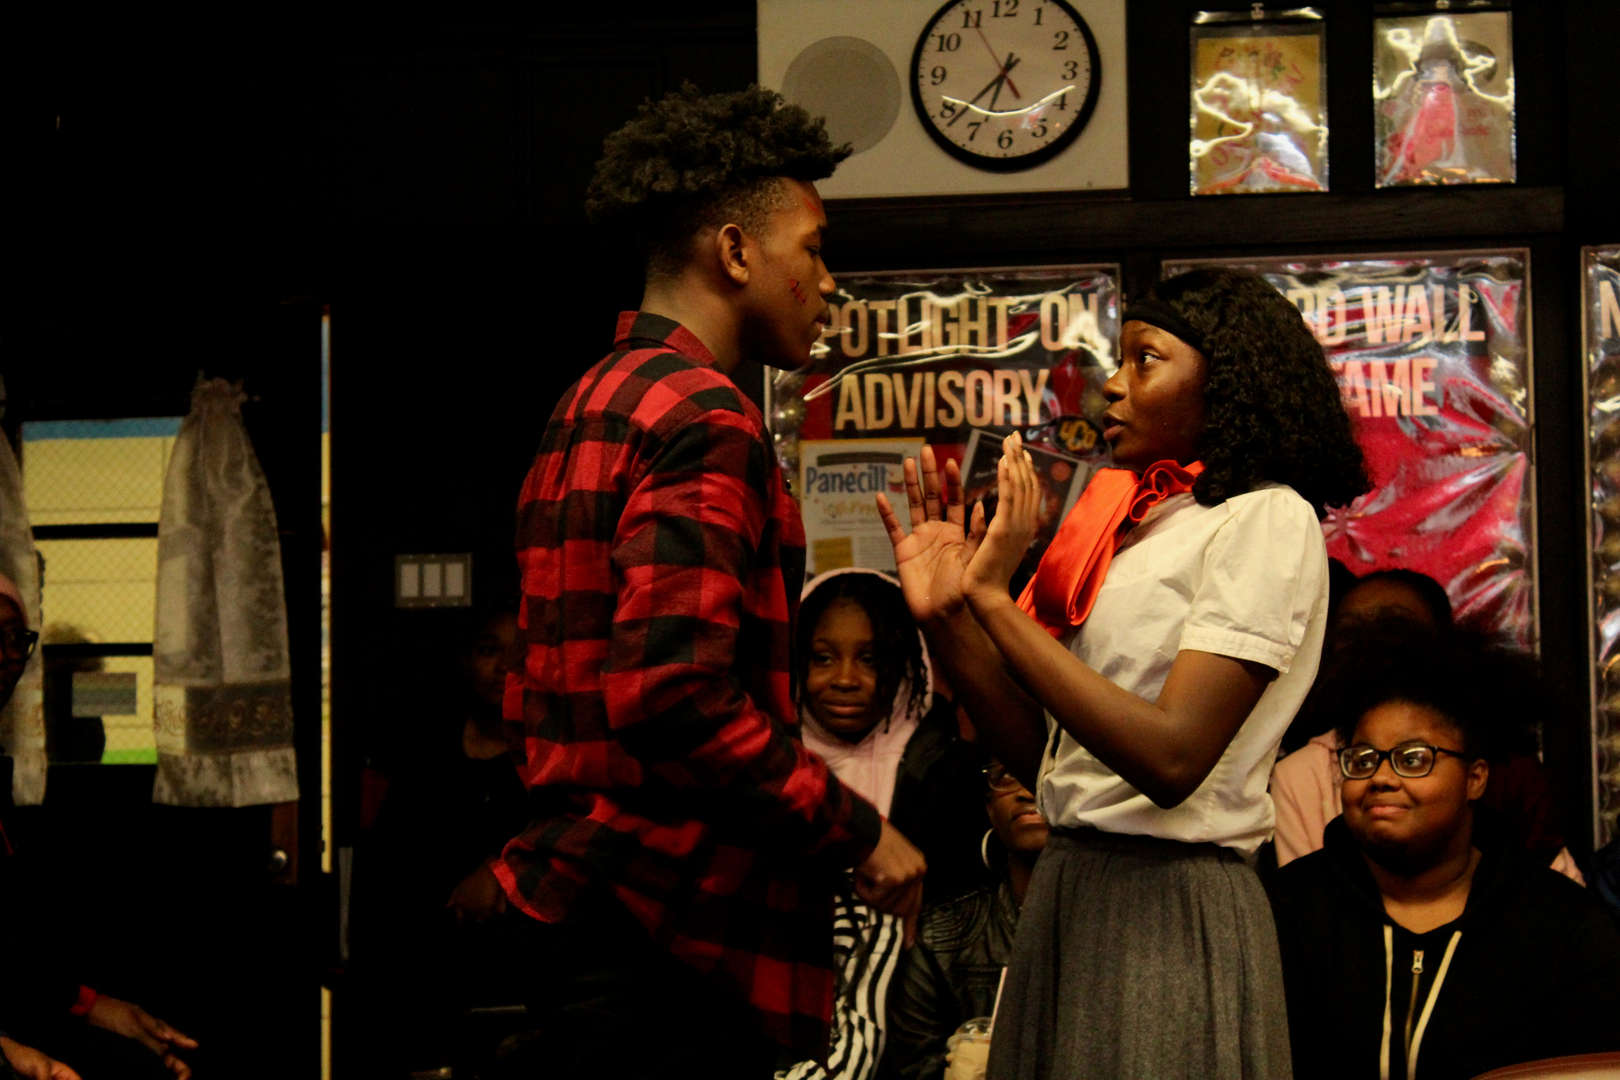 Actor dressed in a red flannel approaches an actress with her hands up